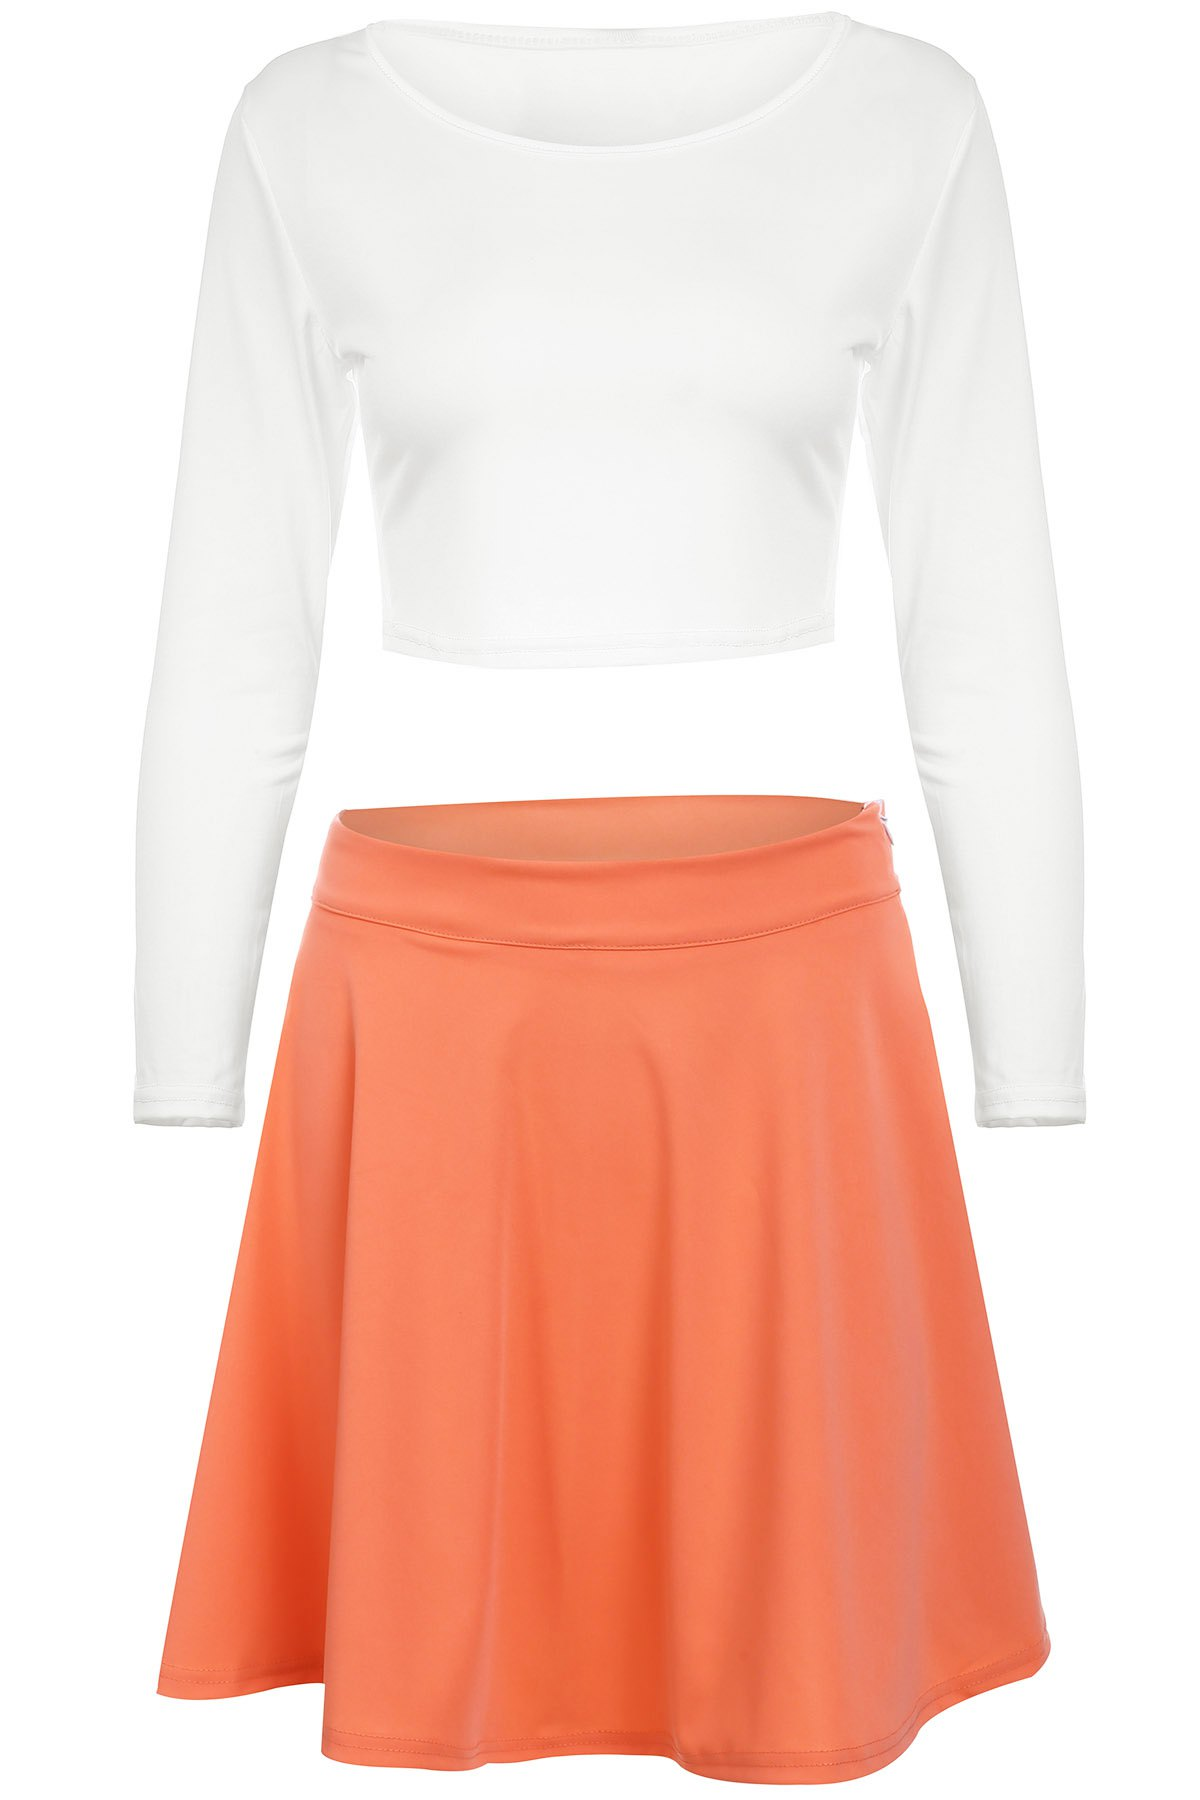 Sale Street Style Scoop Neck Long Sleeve White Crop Top and Neon Coral Short Skirt Suit For Women